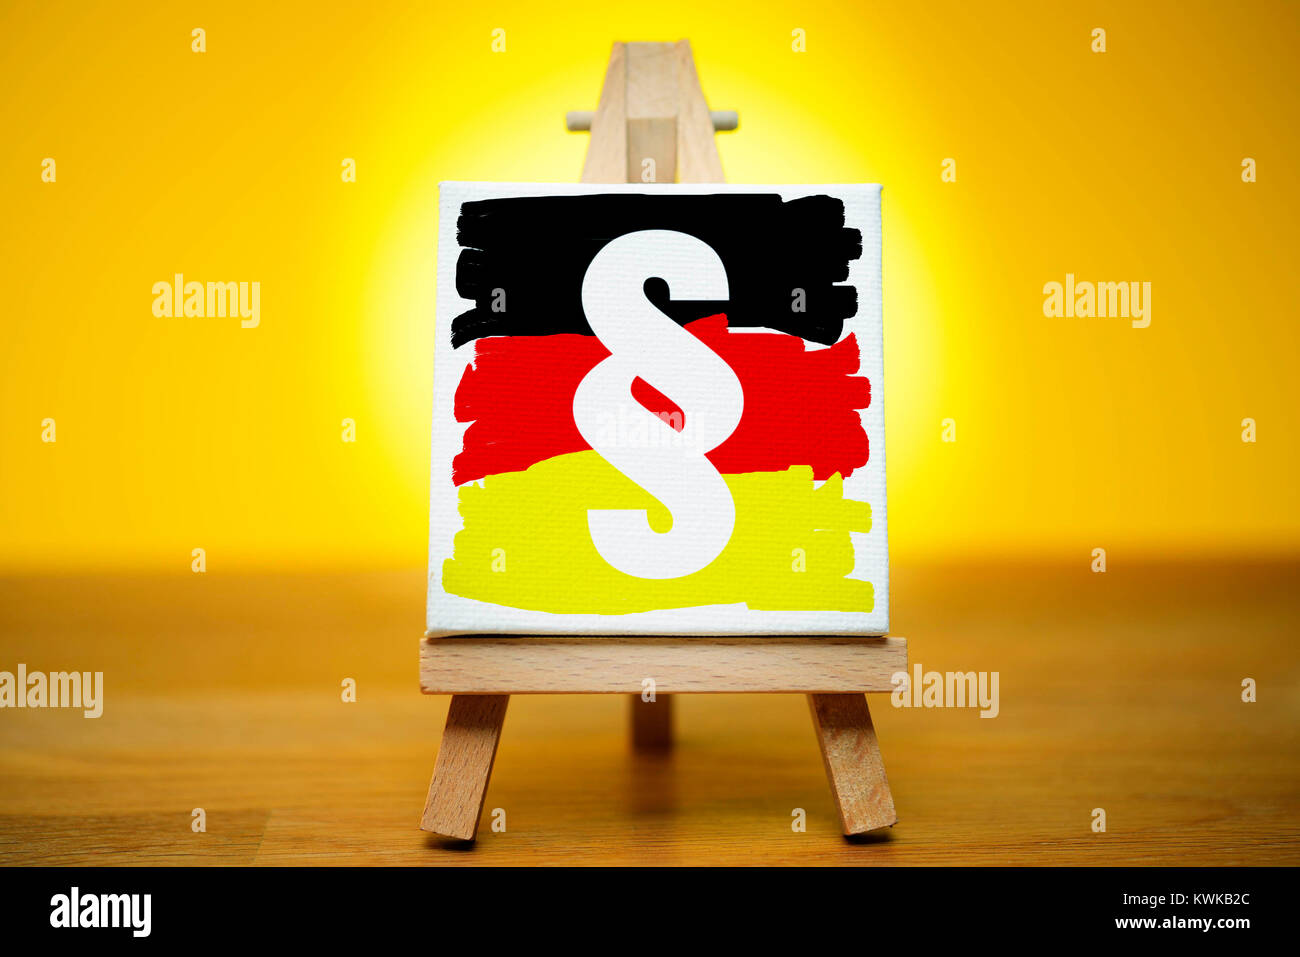 Picture with section sign on an easel, symbolic photo cultural asset law for the protection, Bild mit Paragraphenzeichen - Stock Image